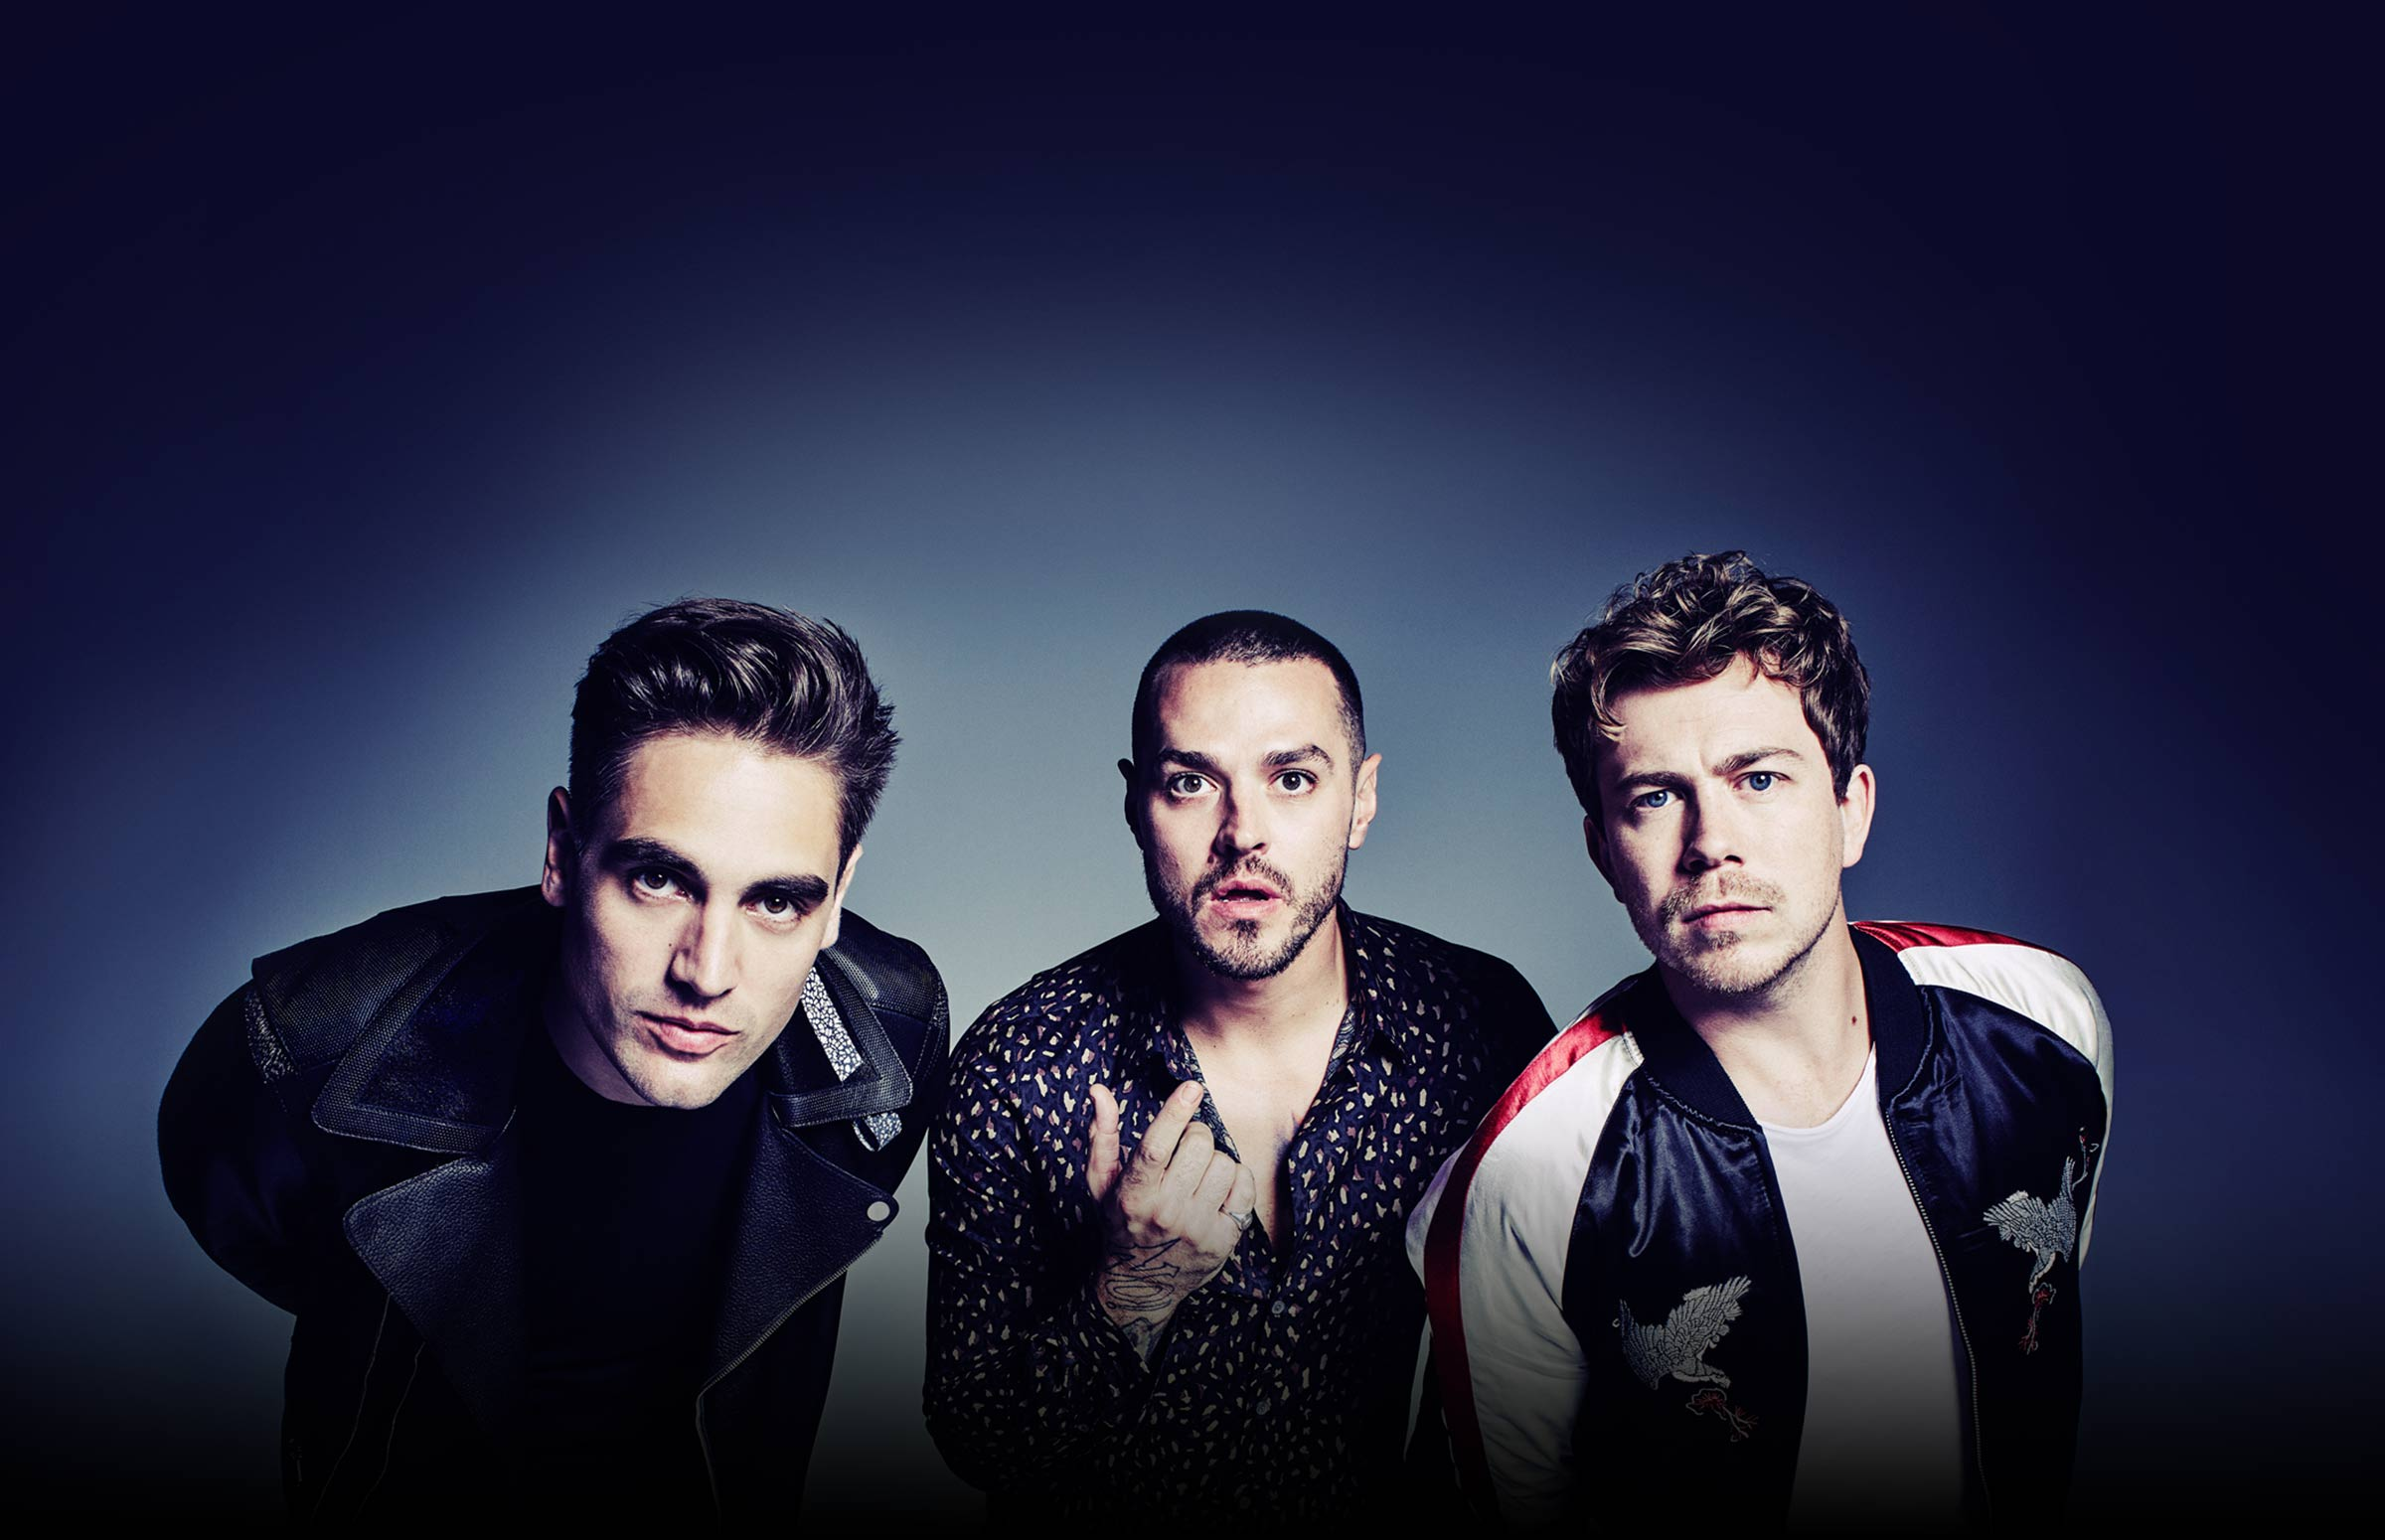 busted sse arena 30th march vip hospitality